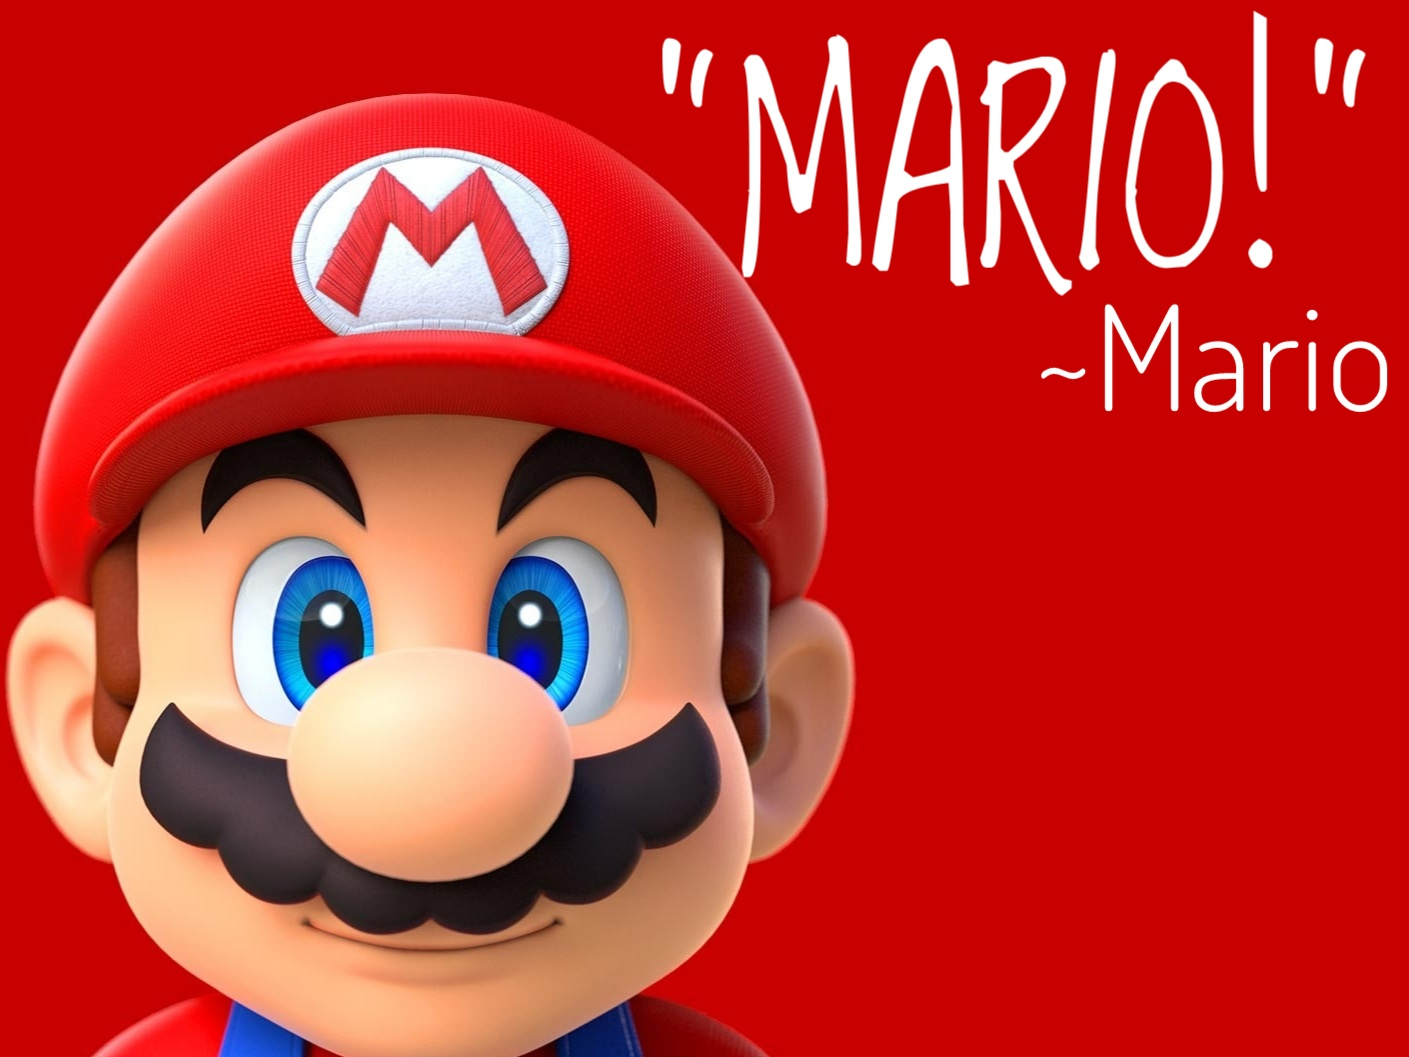 """""""MARIO!"""" as quoted by Mario in any number of Mario's games [1409×1057]"""